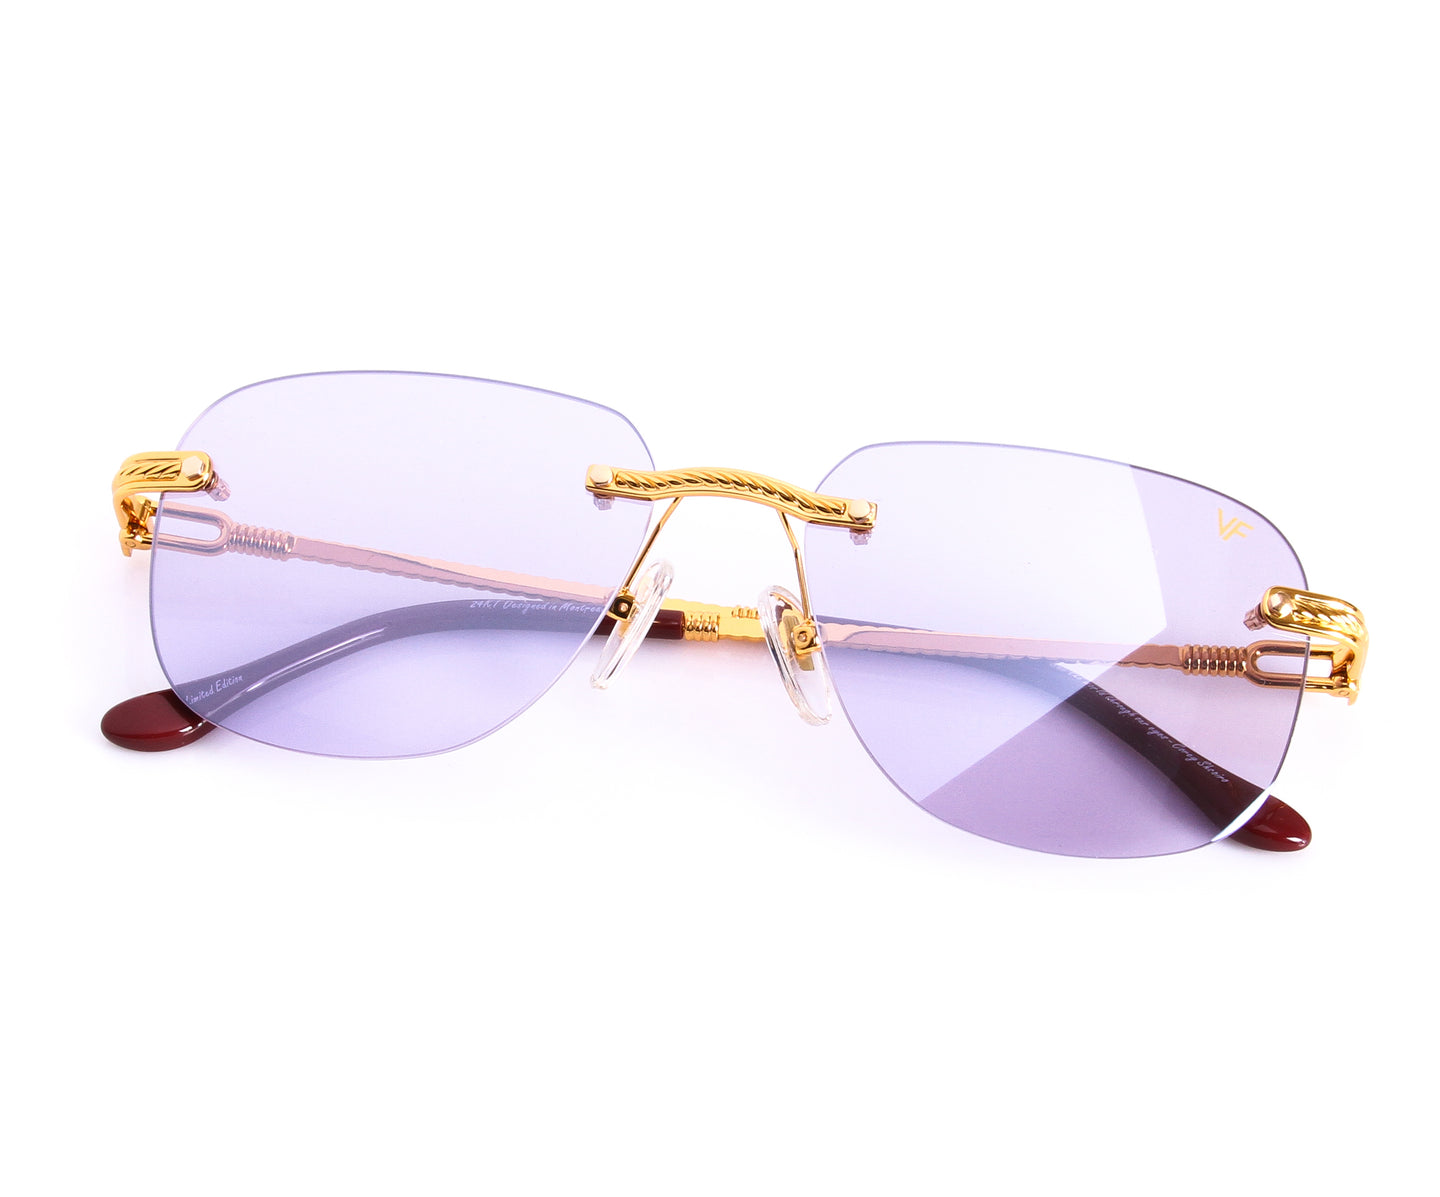 VF Hustler Drill Mount 24KT Gold (Light Purple), VF by Vintage Frames , glasses frames, eyeglasses online, eyeglass frames, mens glasses, womens glasses, buy glasses online, designer eyeglasses, vintage sunglasses, retro sunglasses, vintage glasses, sunglass, eyeglass, glasses, lens, vintage frames company, vf